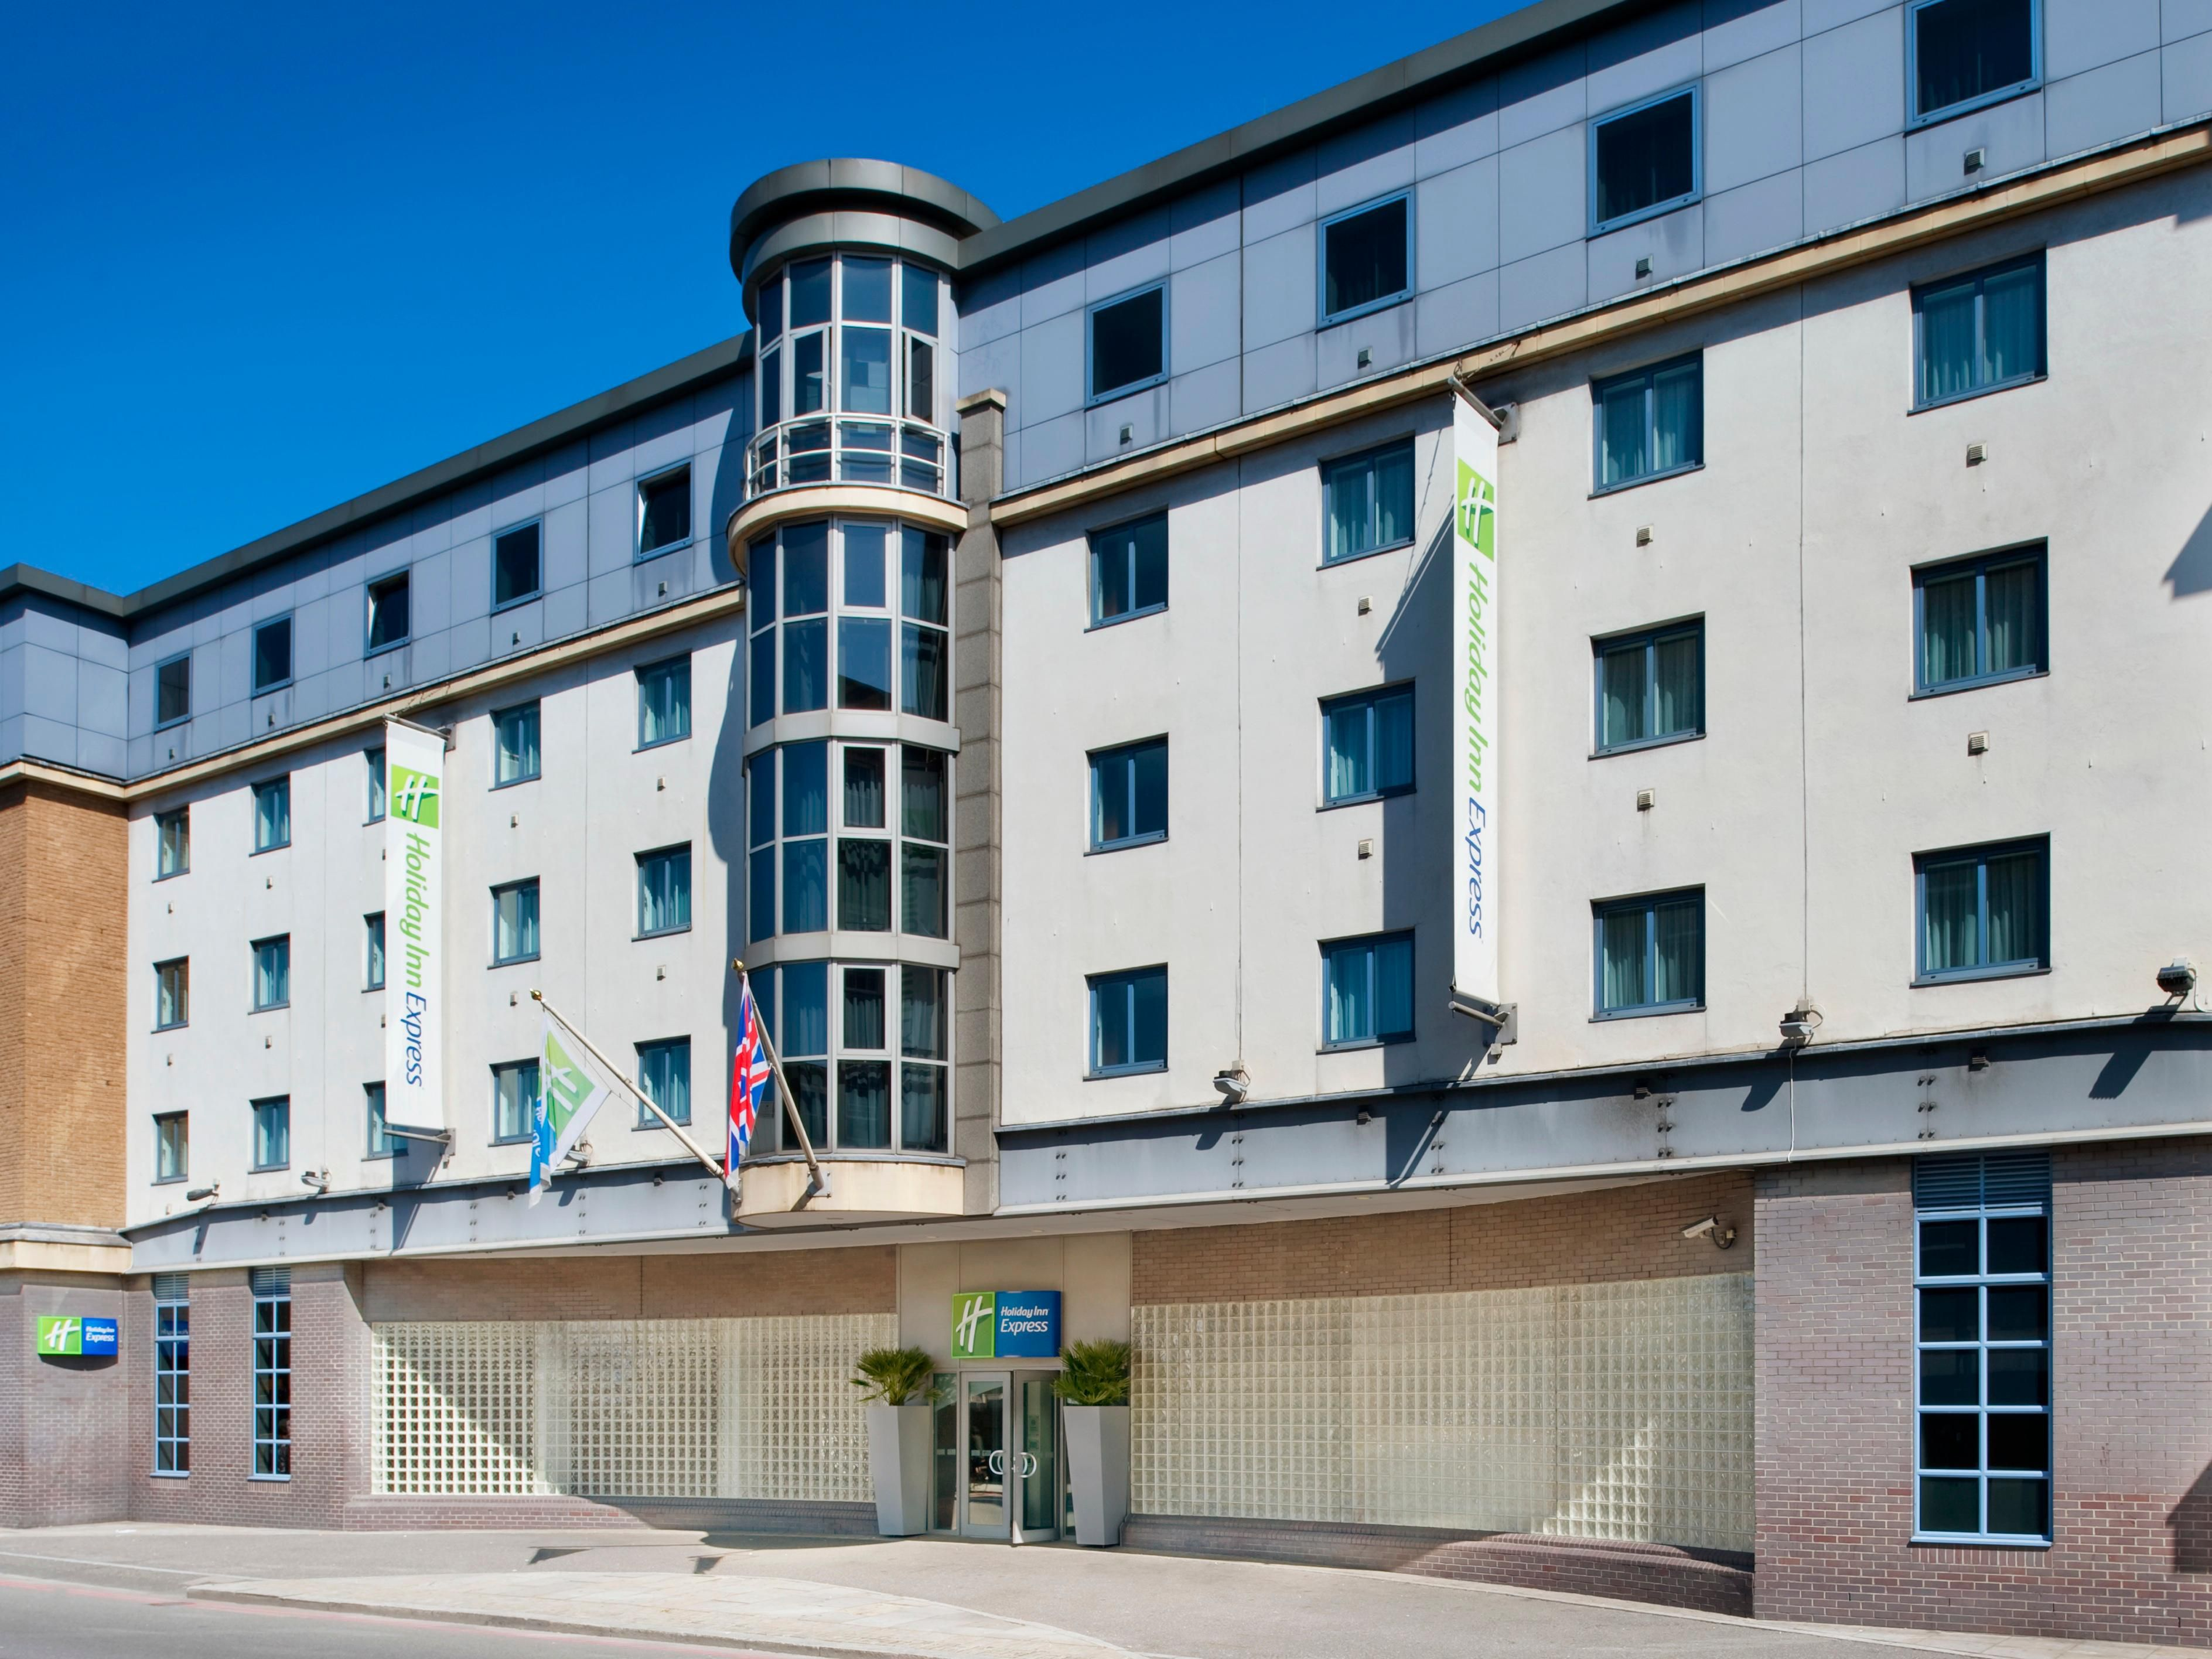 Holiday Inn Express Hounslow Hotels | Budget Hotels in Hounslow by IHG